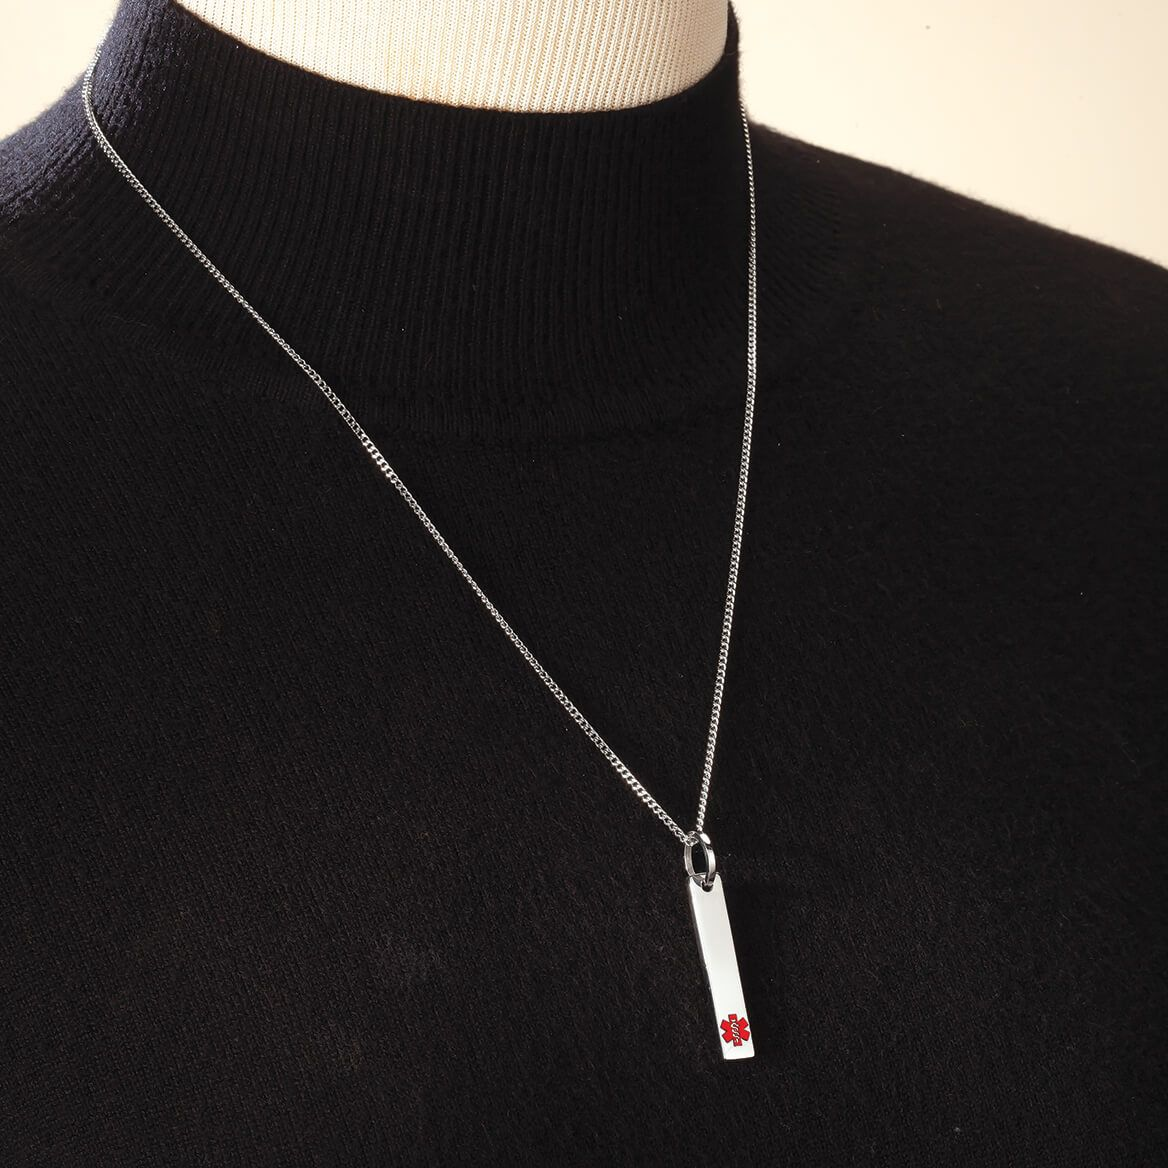 Personalized Medical ID Bar Necklace-369372